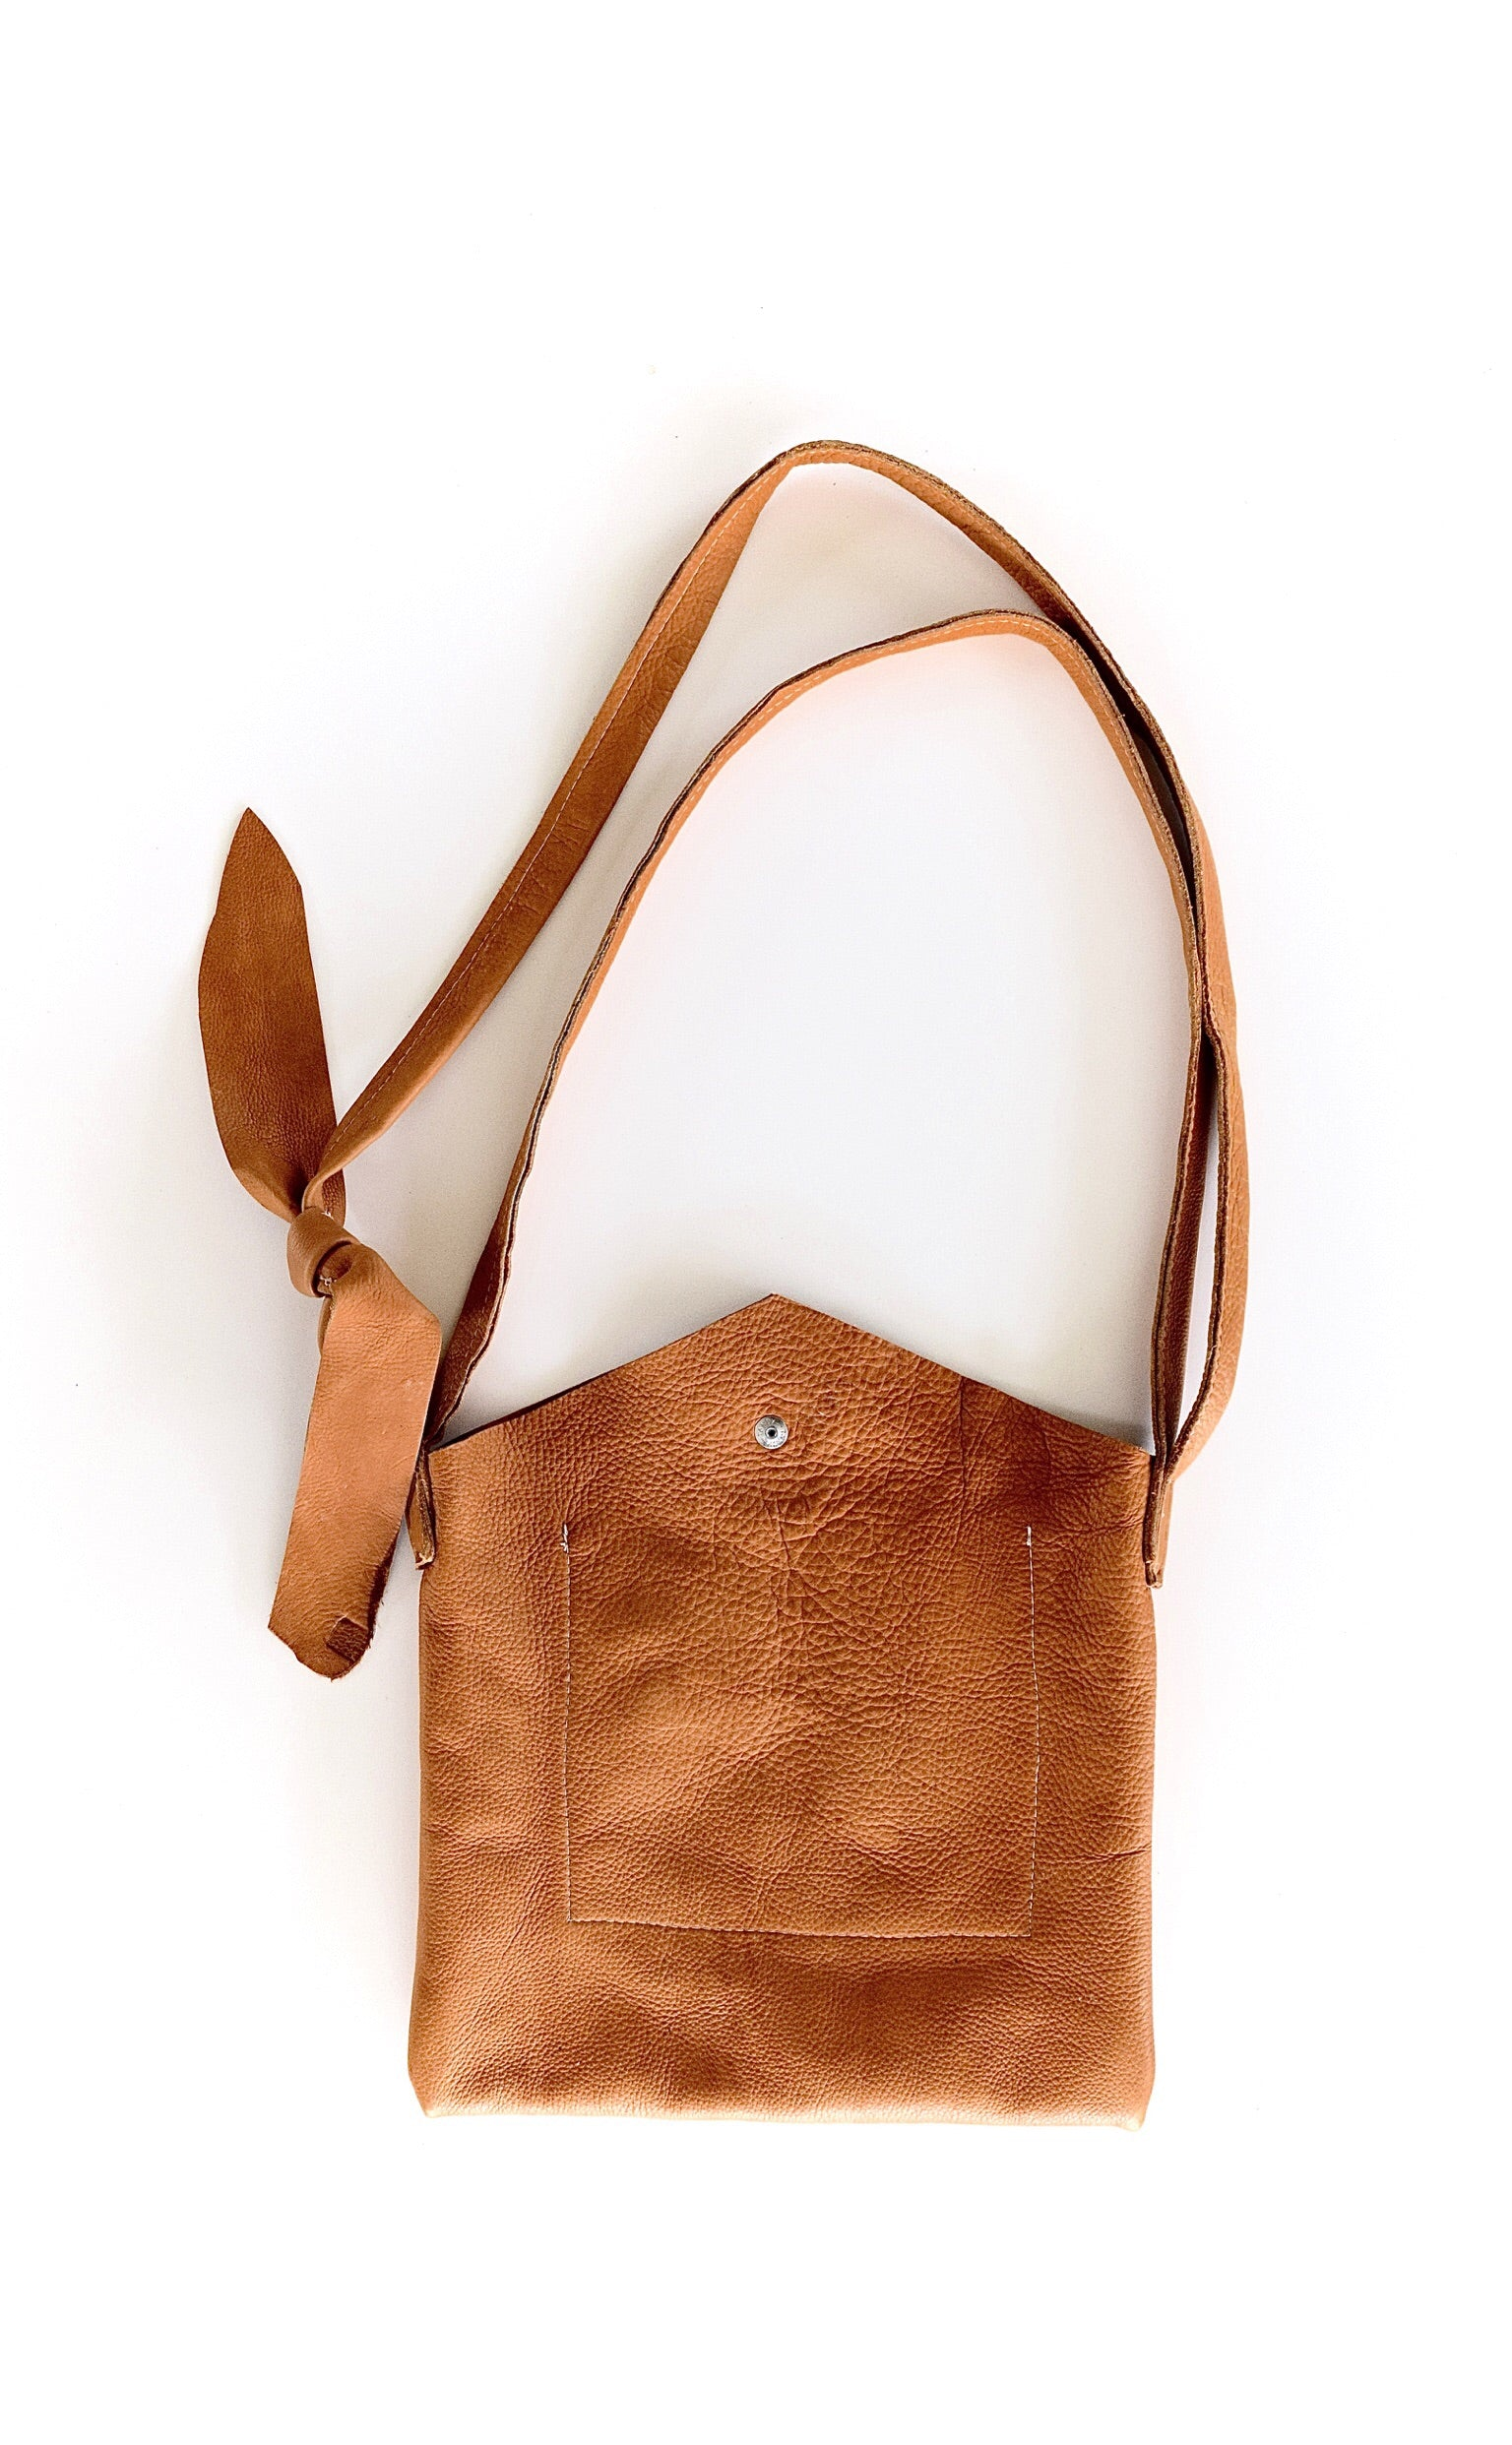 O RIVIERA - leather crossbody handbag with shoulder strap - saddle tan